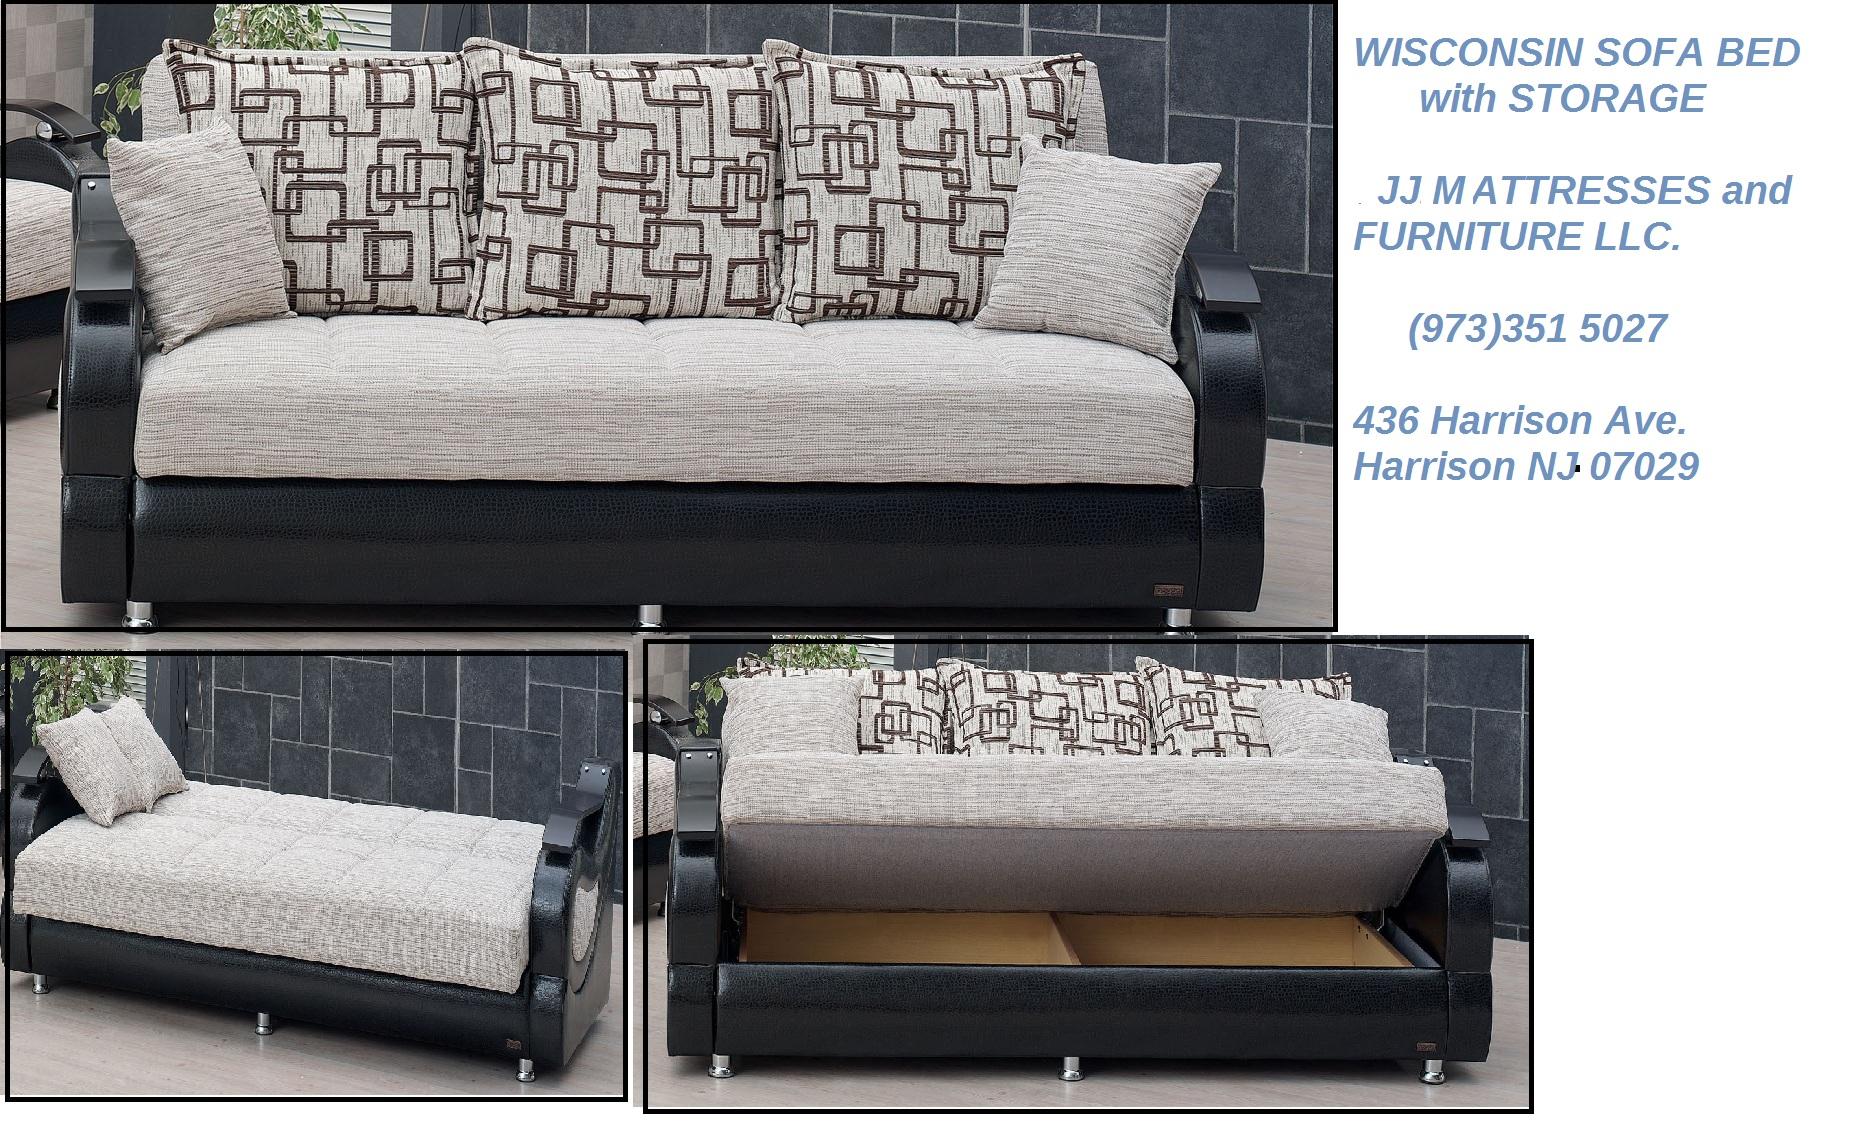 WISCONSIN SOFA BED